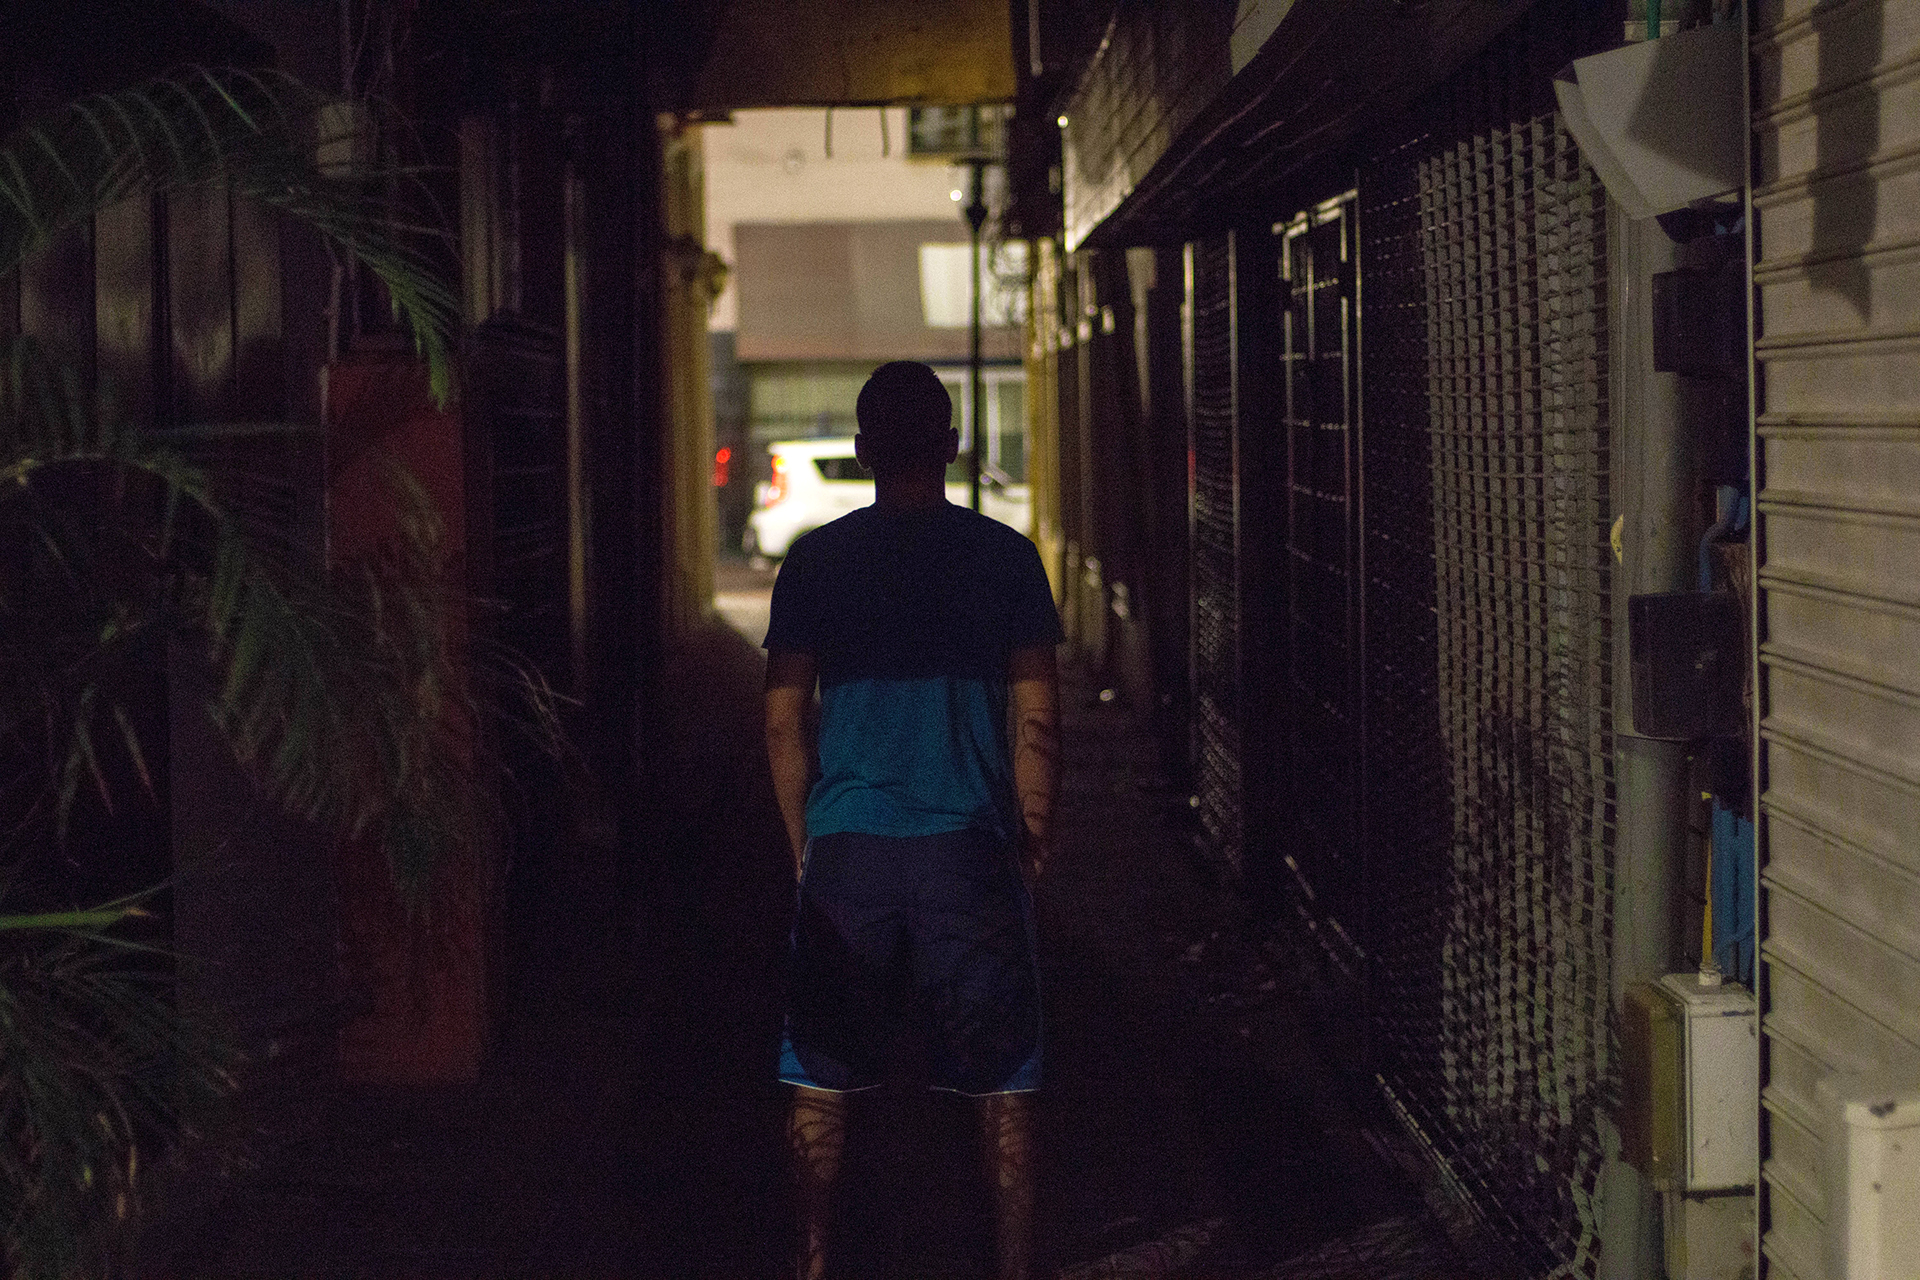 A silhouette of a man facing away in a dark alley.